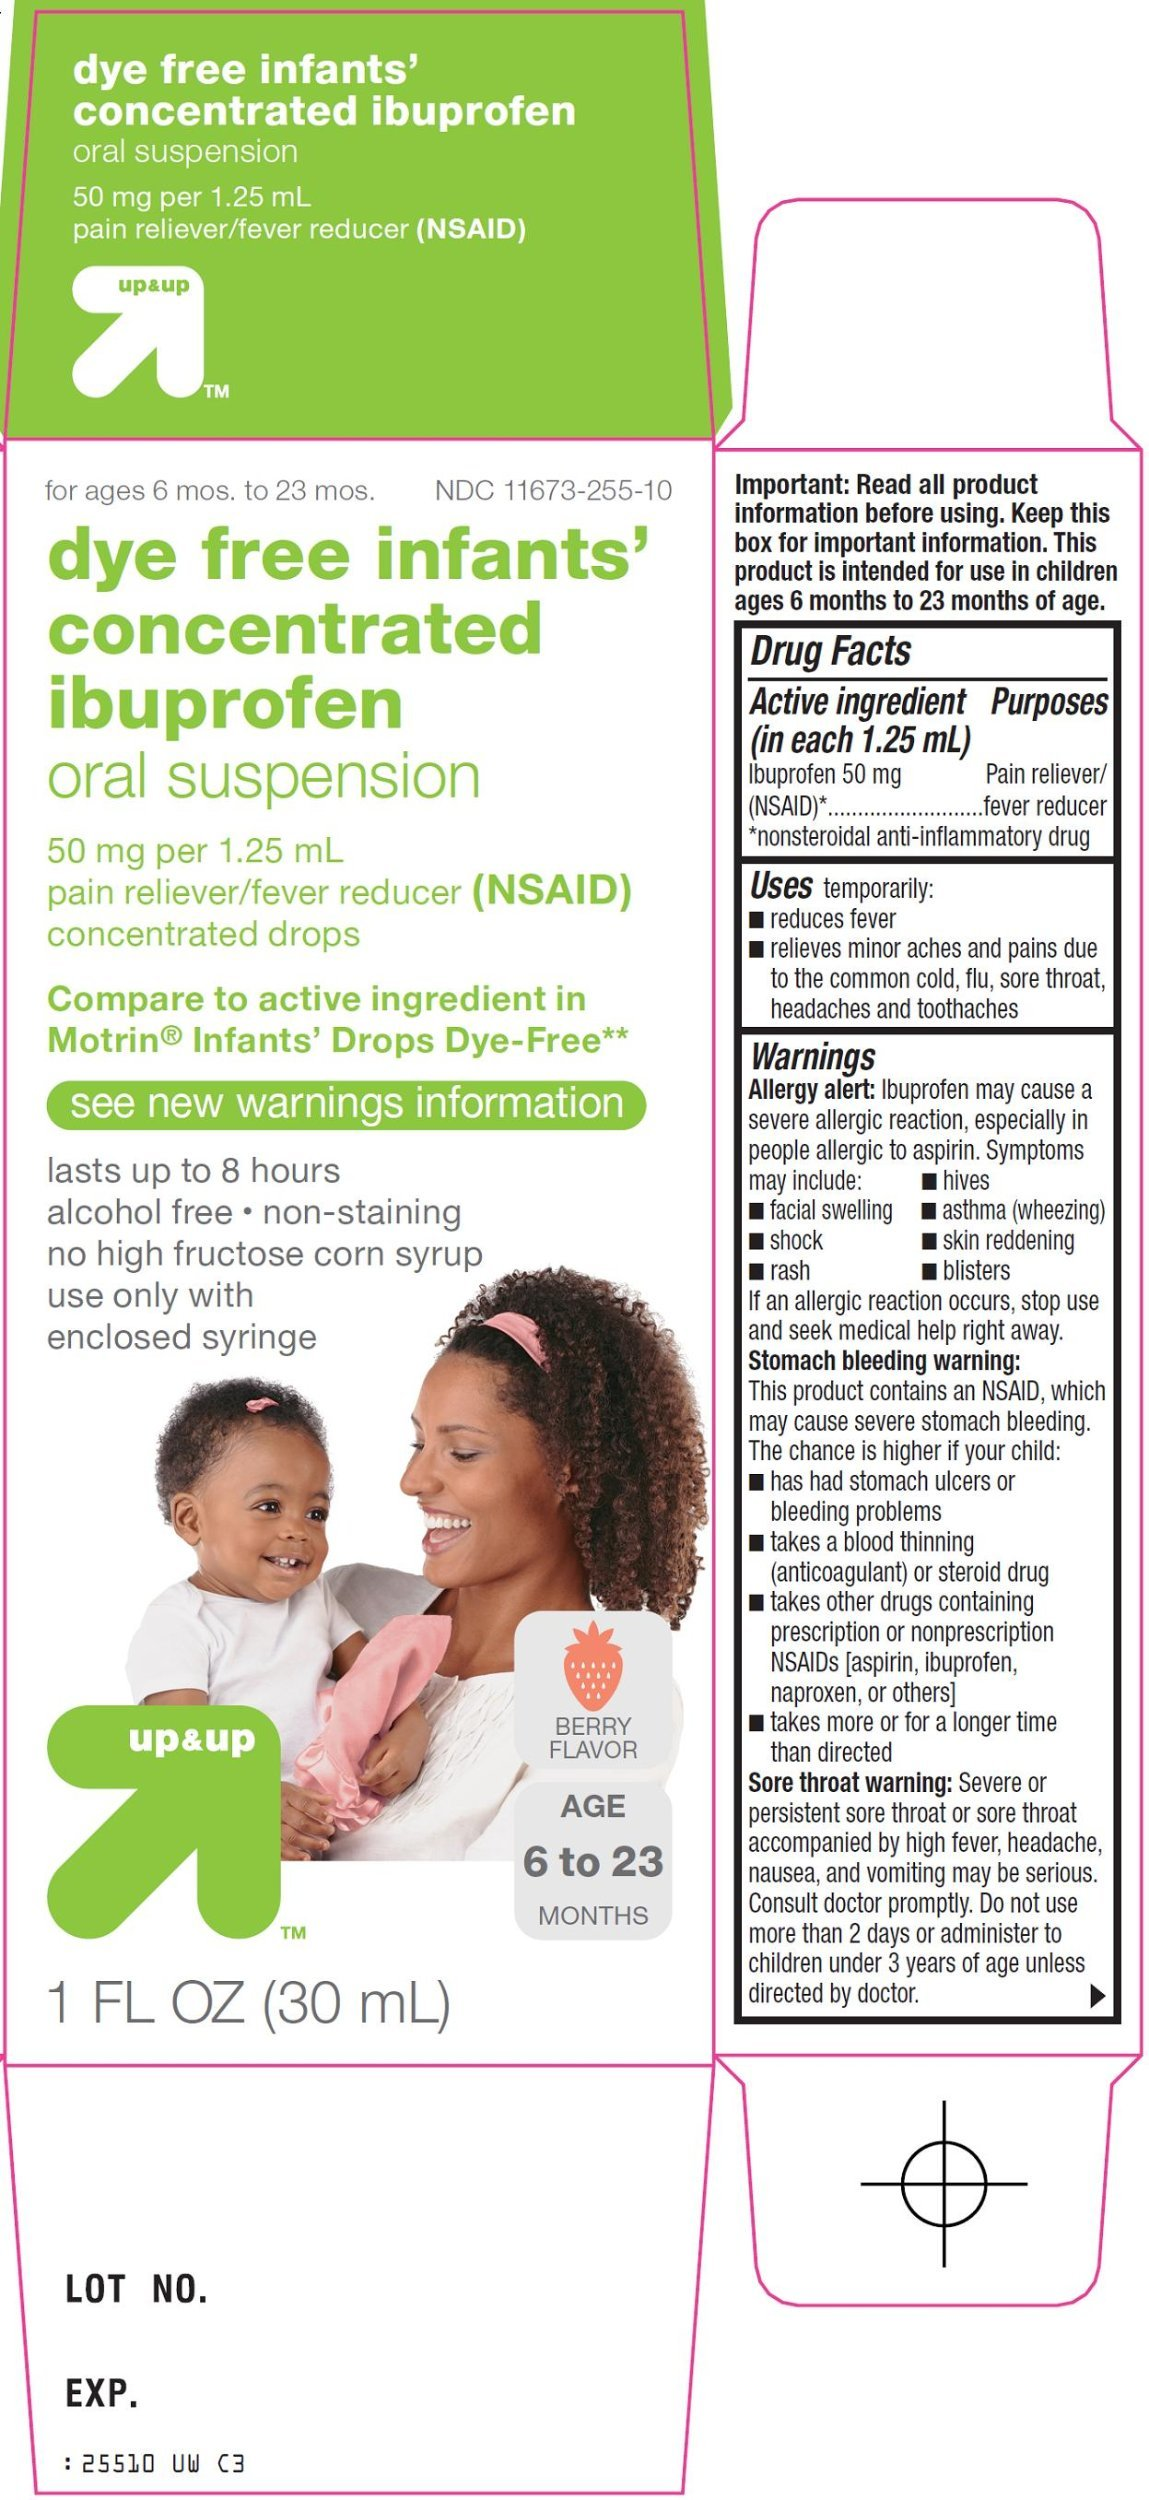 Up and Up Dye-Free Infants' Concentrated Ibuprofen 1oz Compare to Motrin Infants' Drops Dye Free 2-PACK